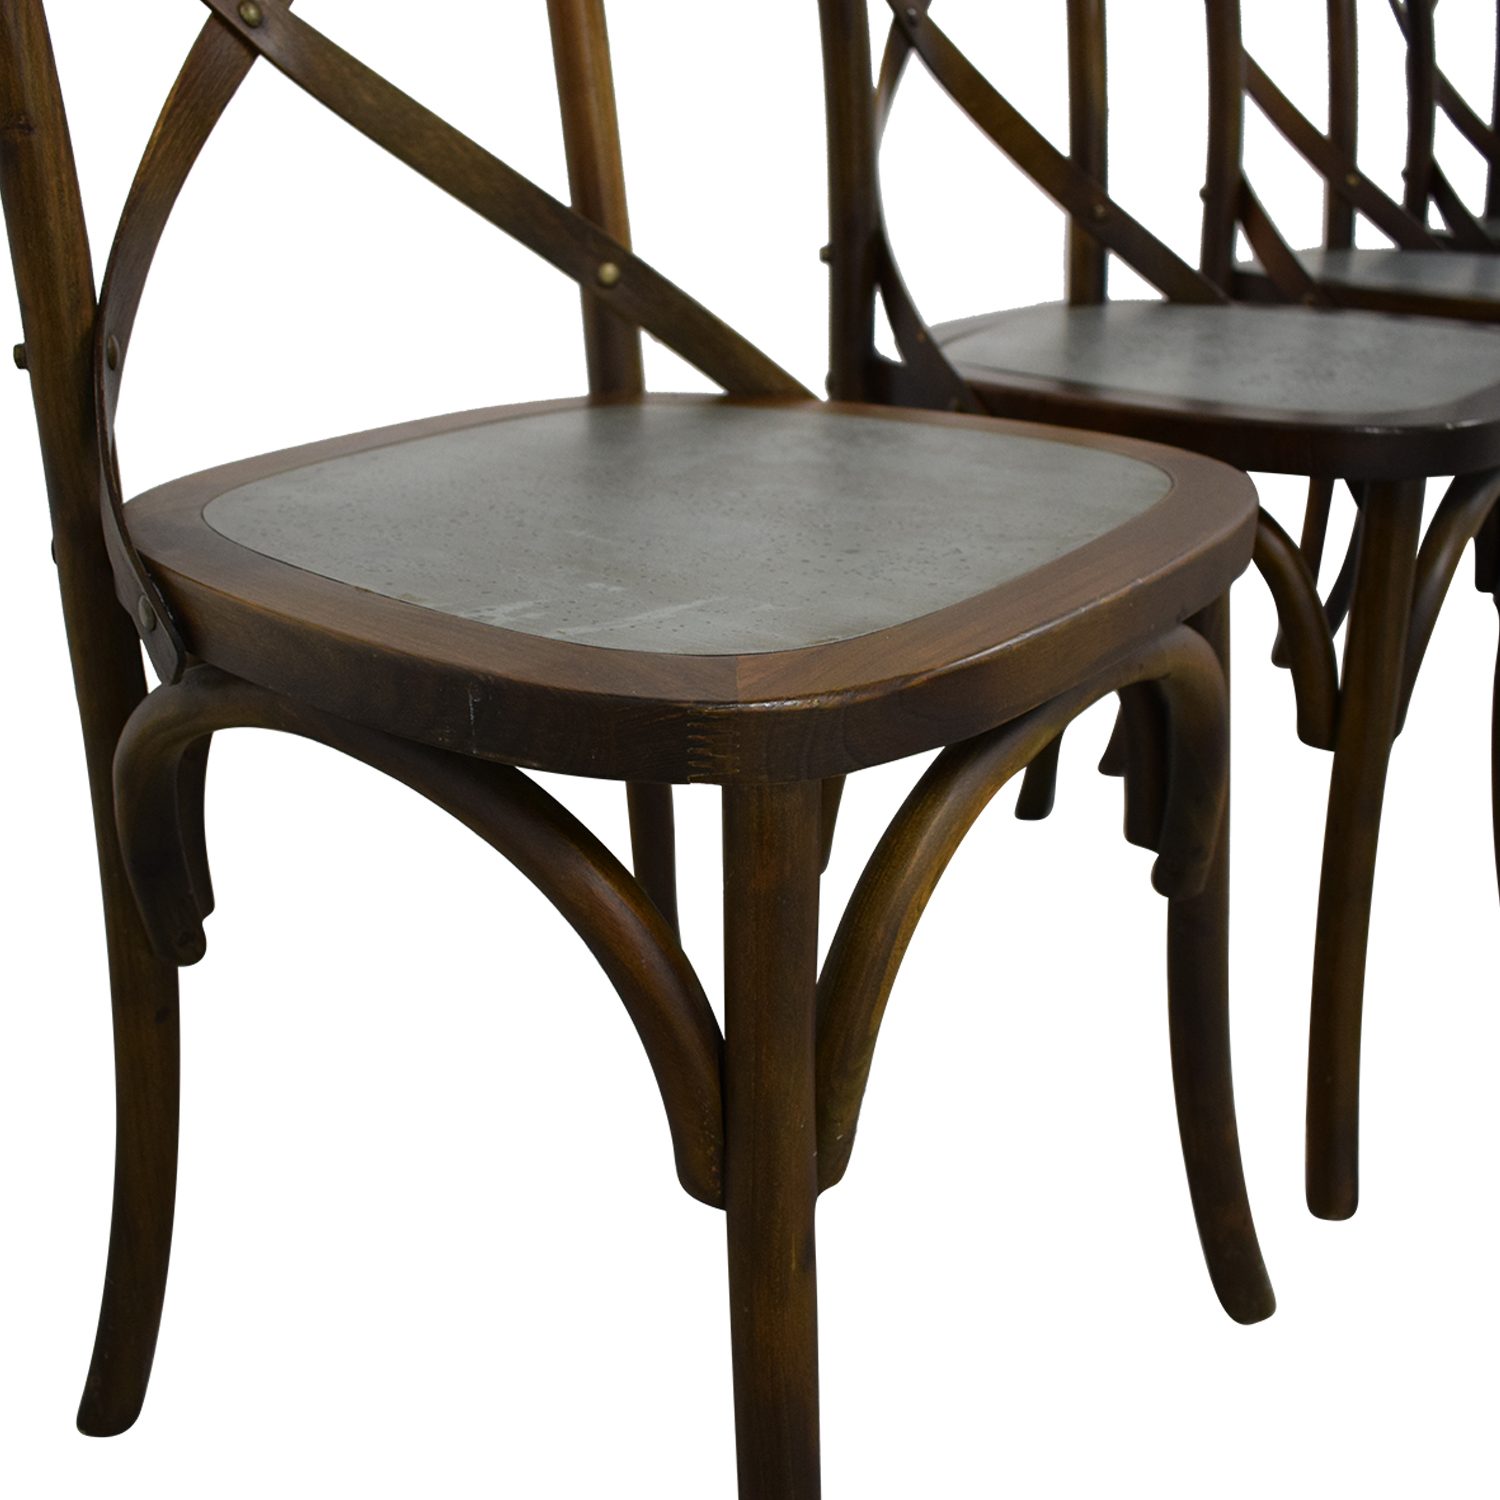 Sitcom Furniture Sitcom Furniture Wood and Metal Dining Chairs nyc